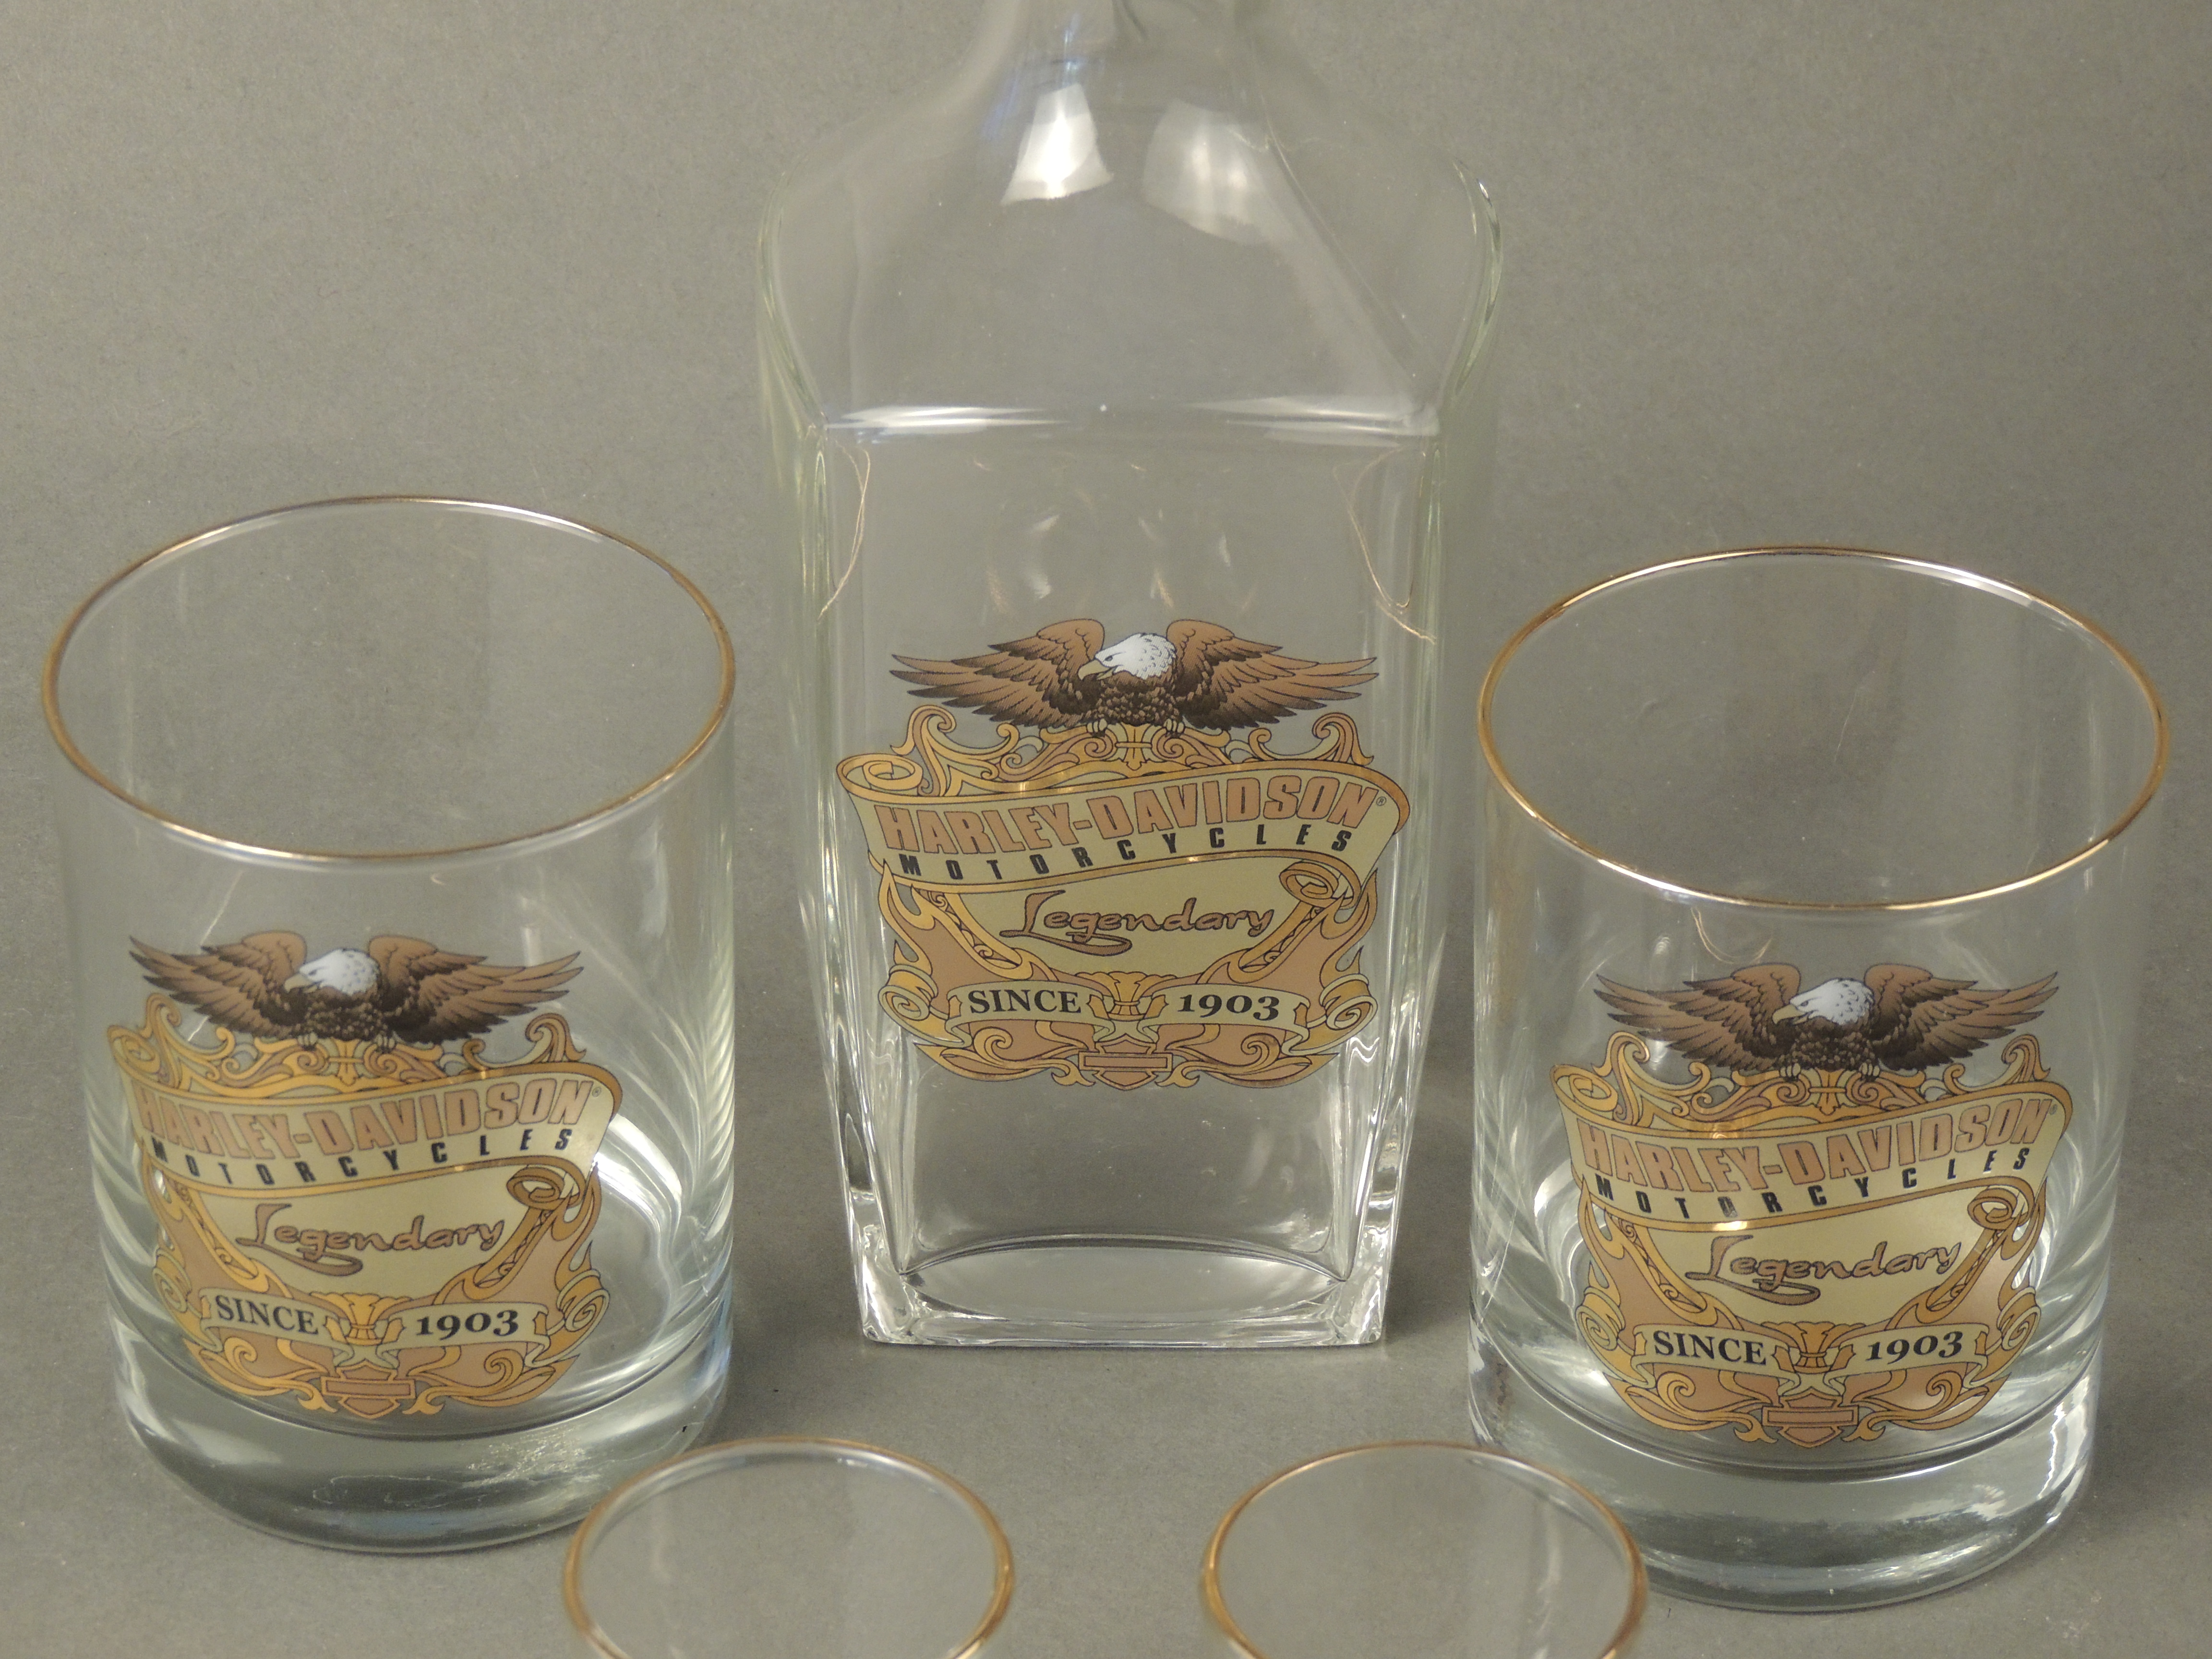 Harley Davidson Legendary Decanter with shot and Glass Set